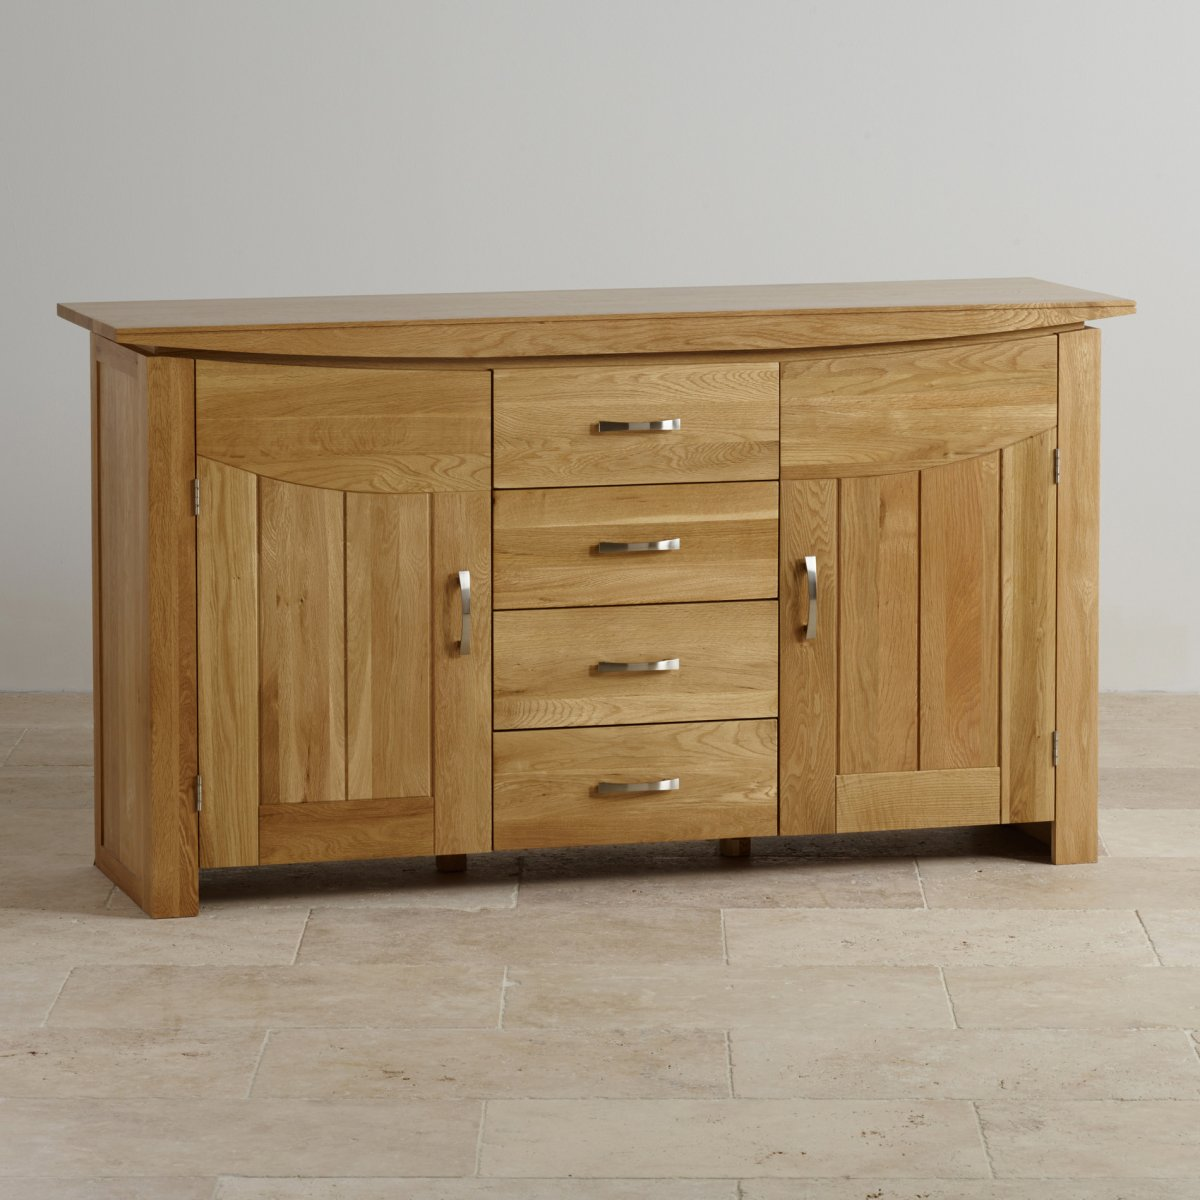 Tokyo large sideboard in natural solid oak oak furniture for Furniture uk